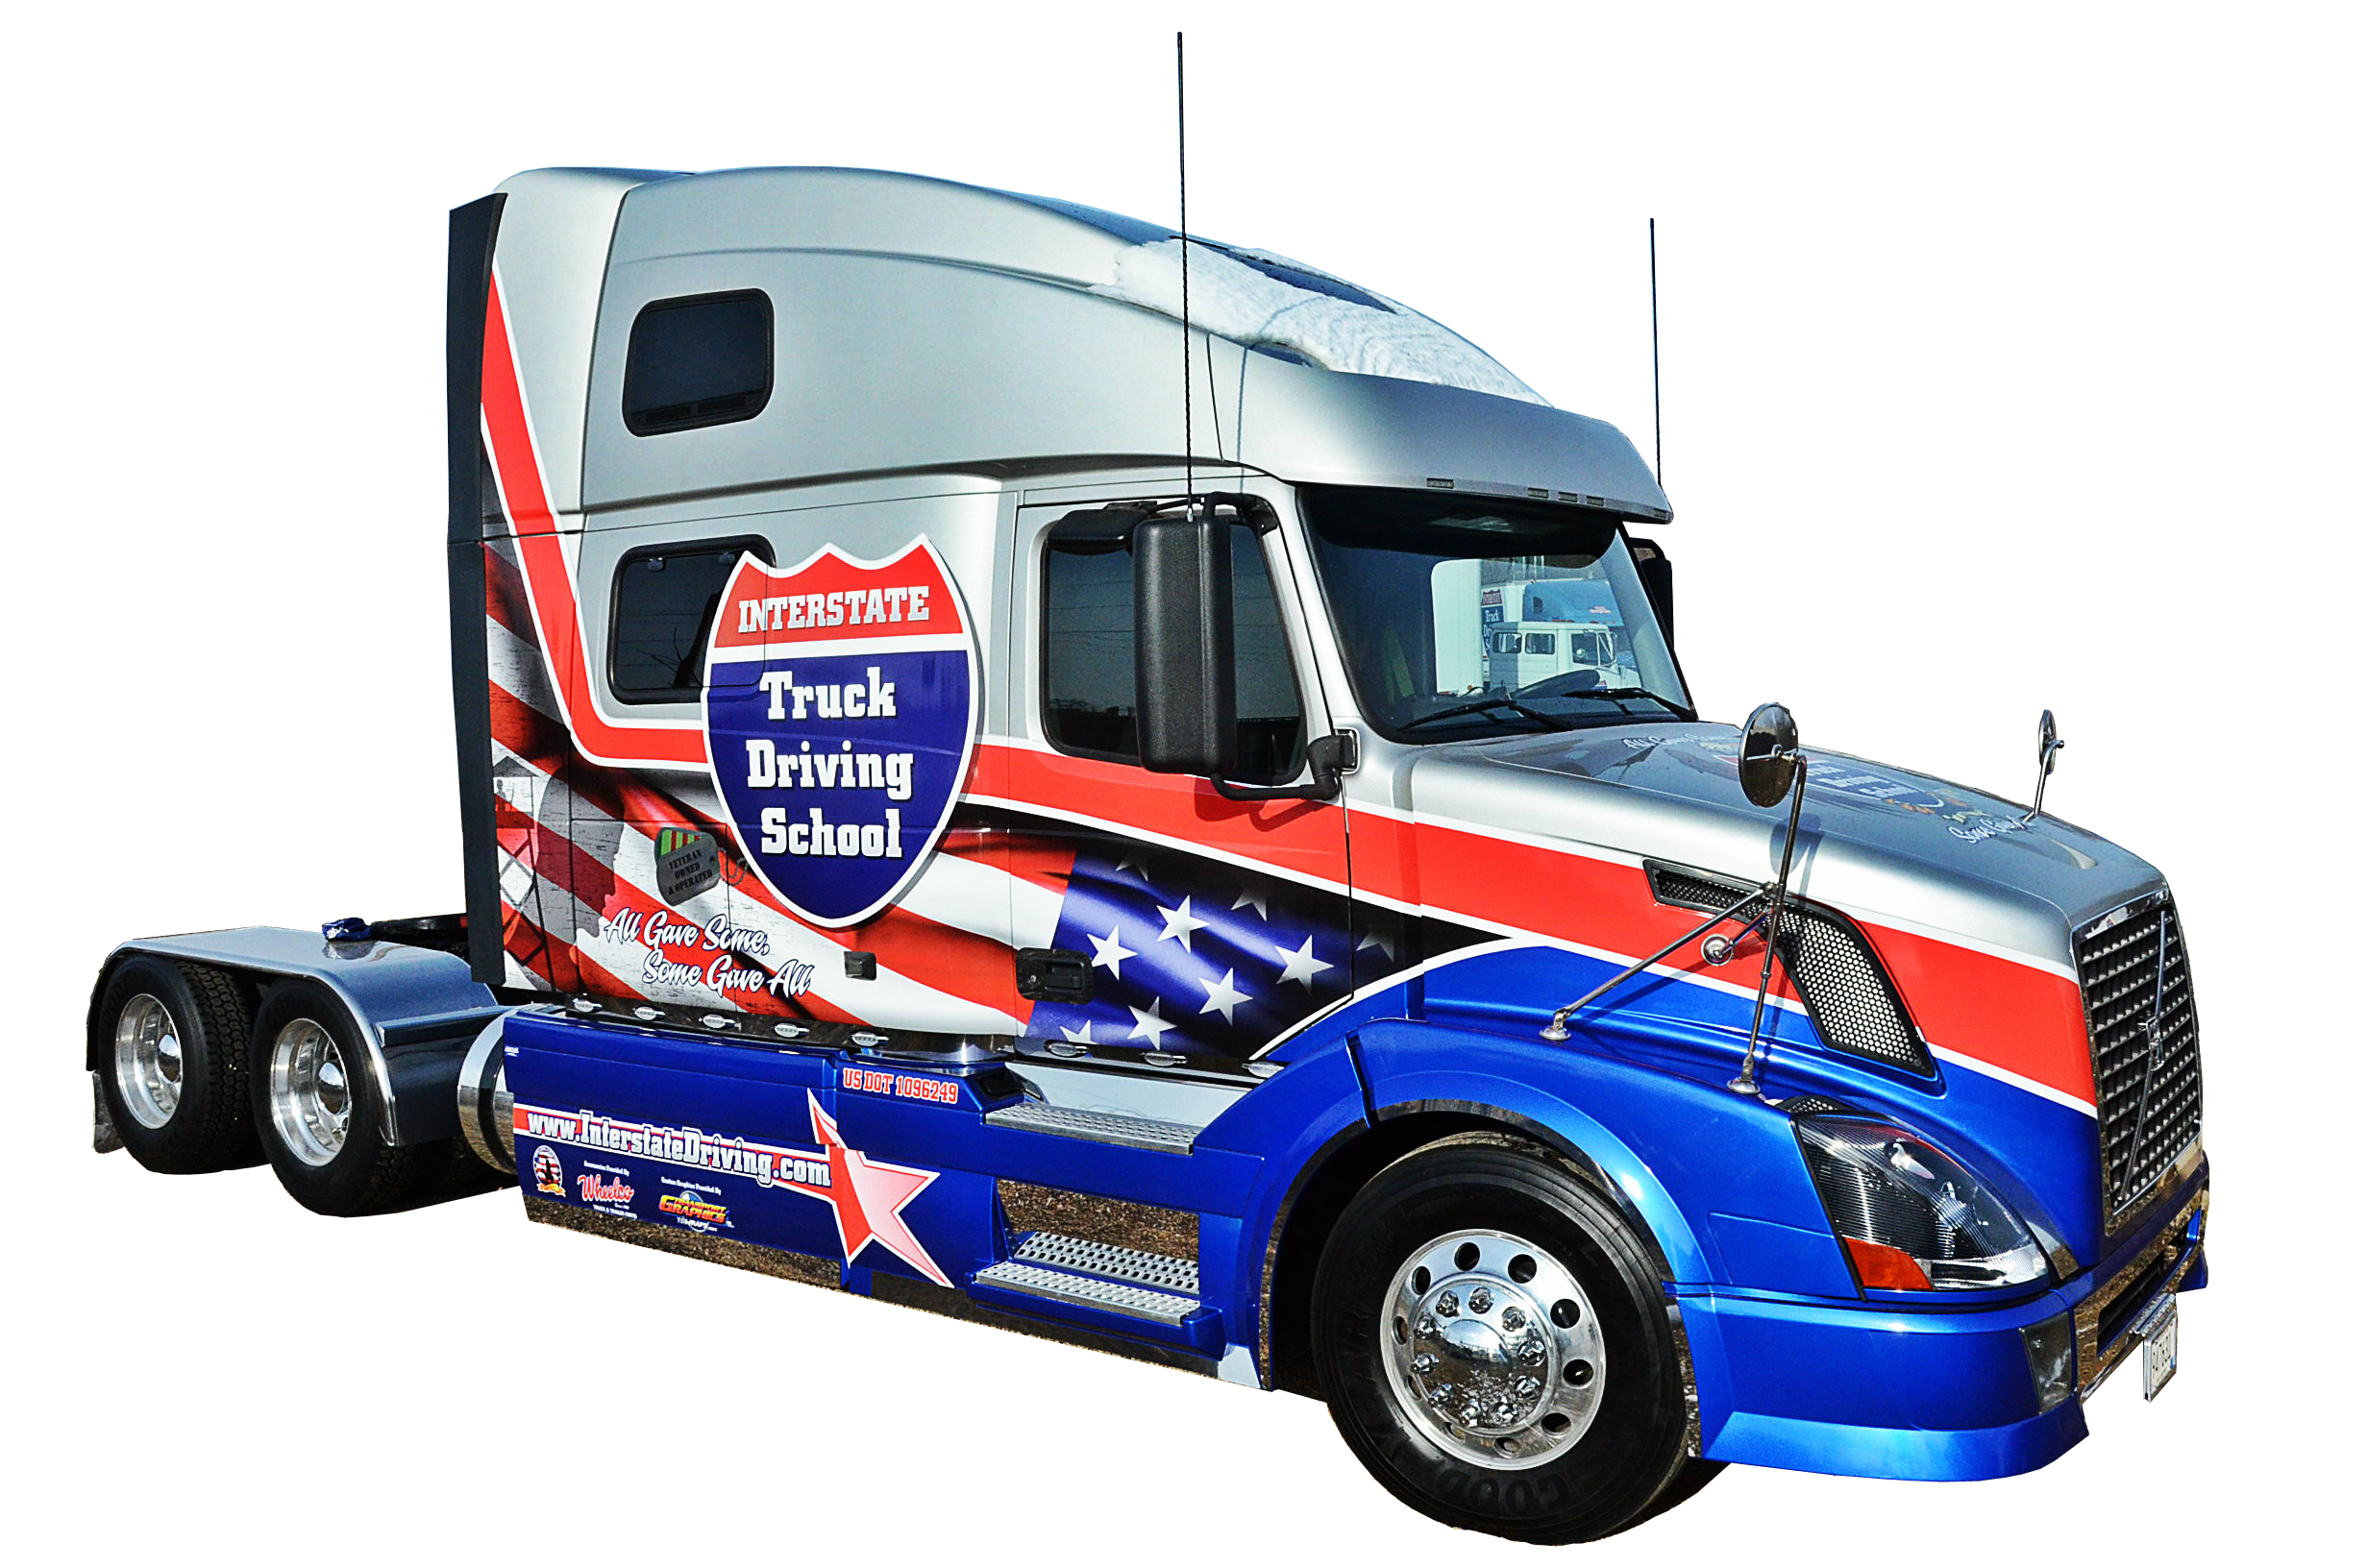 Truck driver dating site in usa